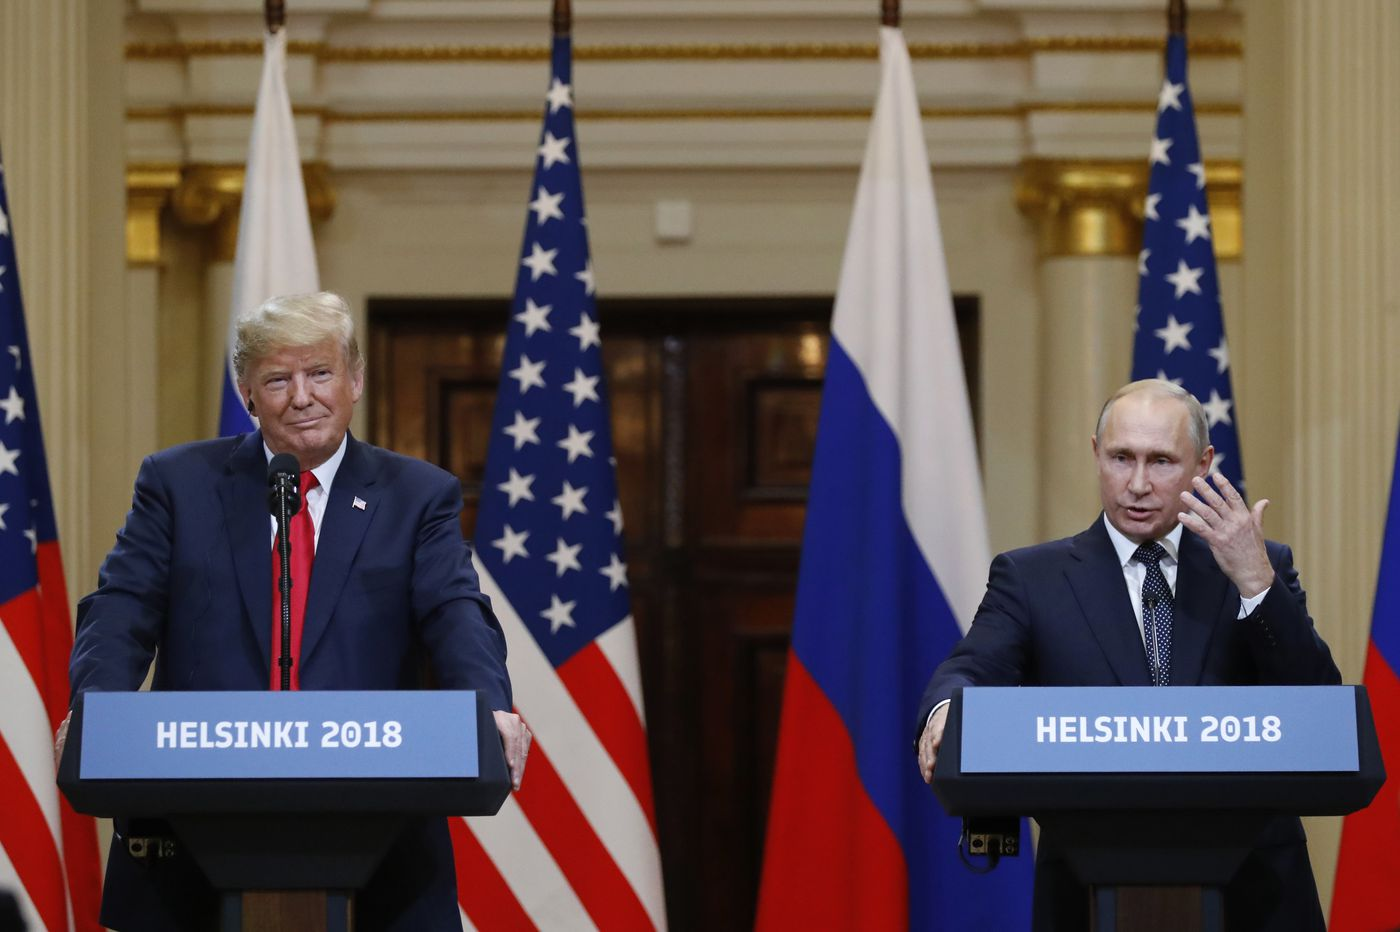 Trump surrenders to Putin at Helsinki summit | Trudy Rubin